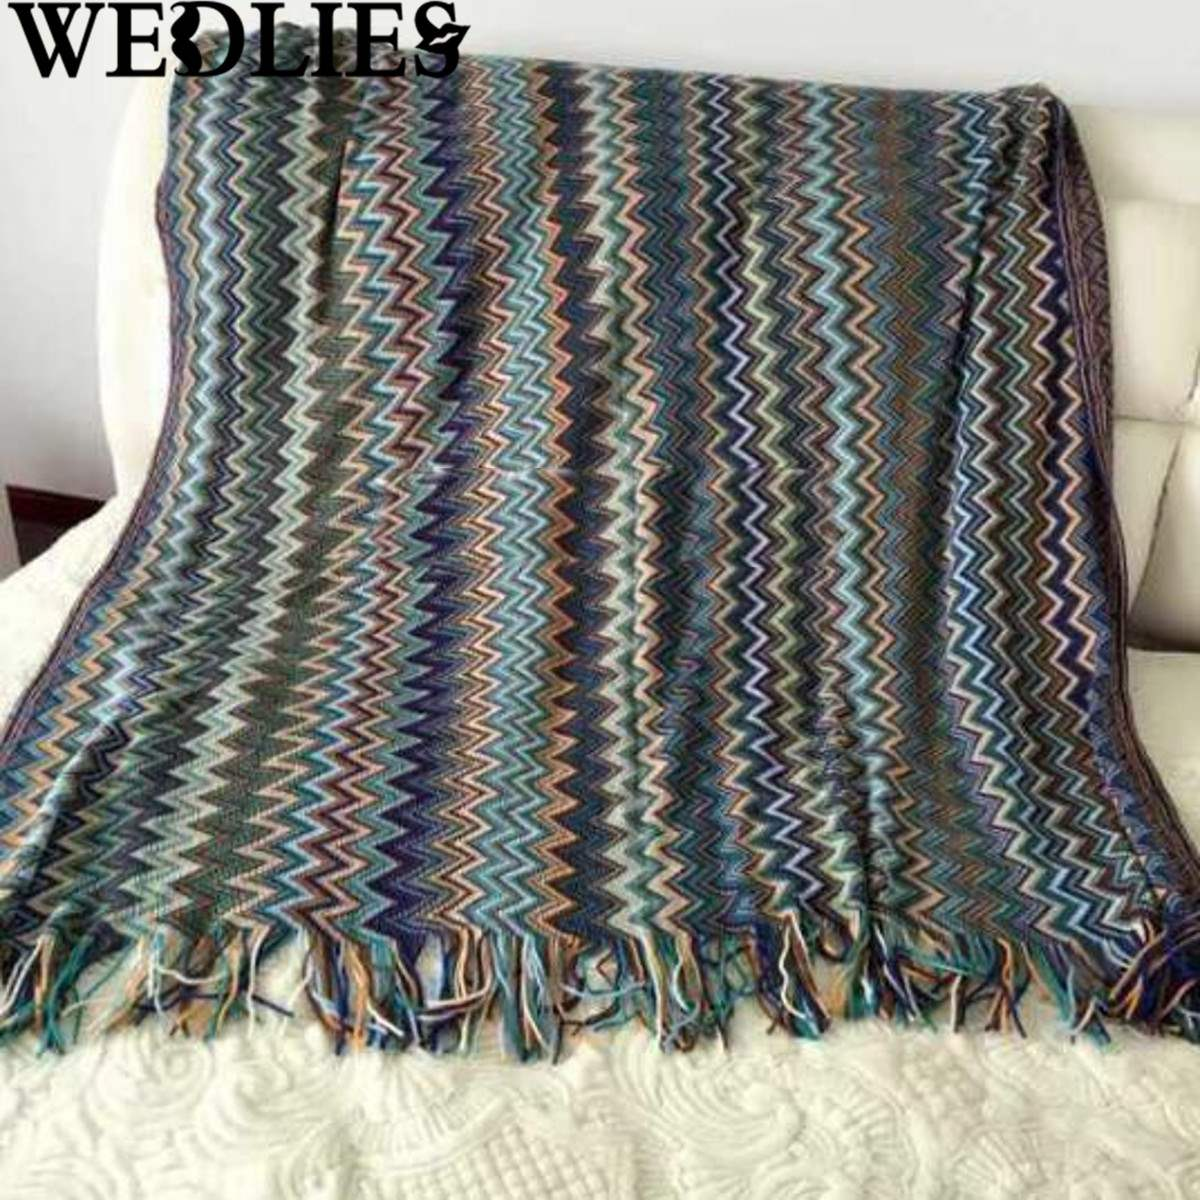 Hanging Rugs Online Get Cheap Hanging Rugs Aliexpresscom Alibaba Group